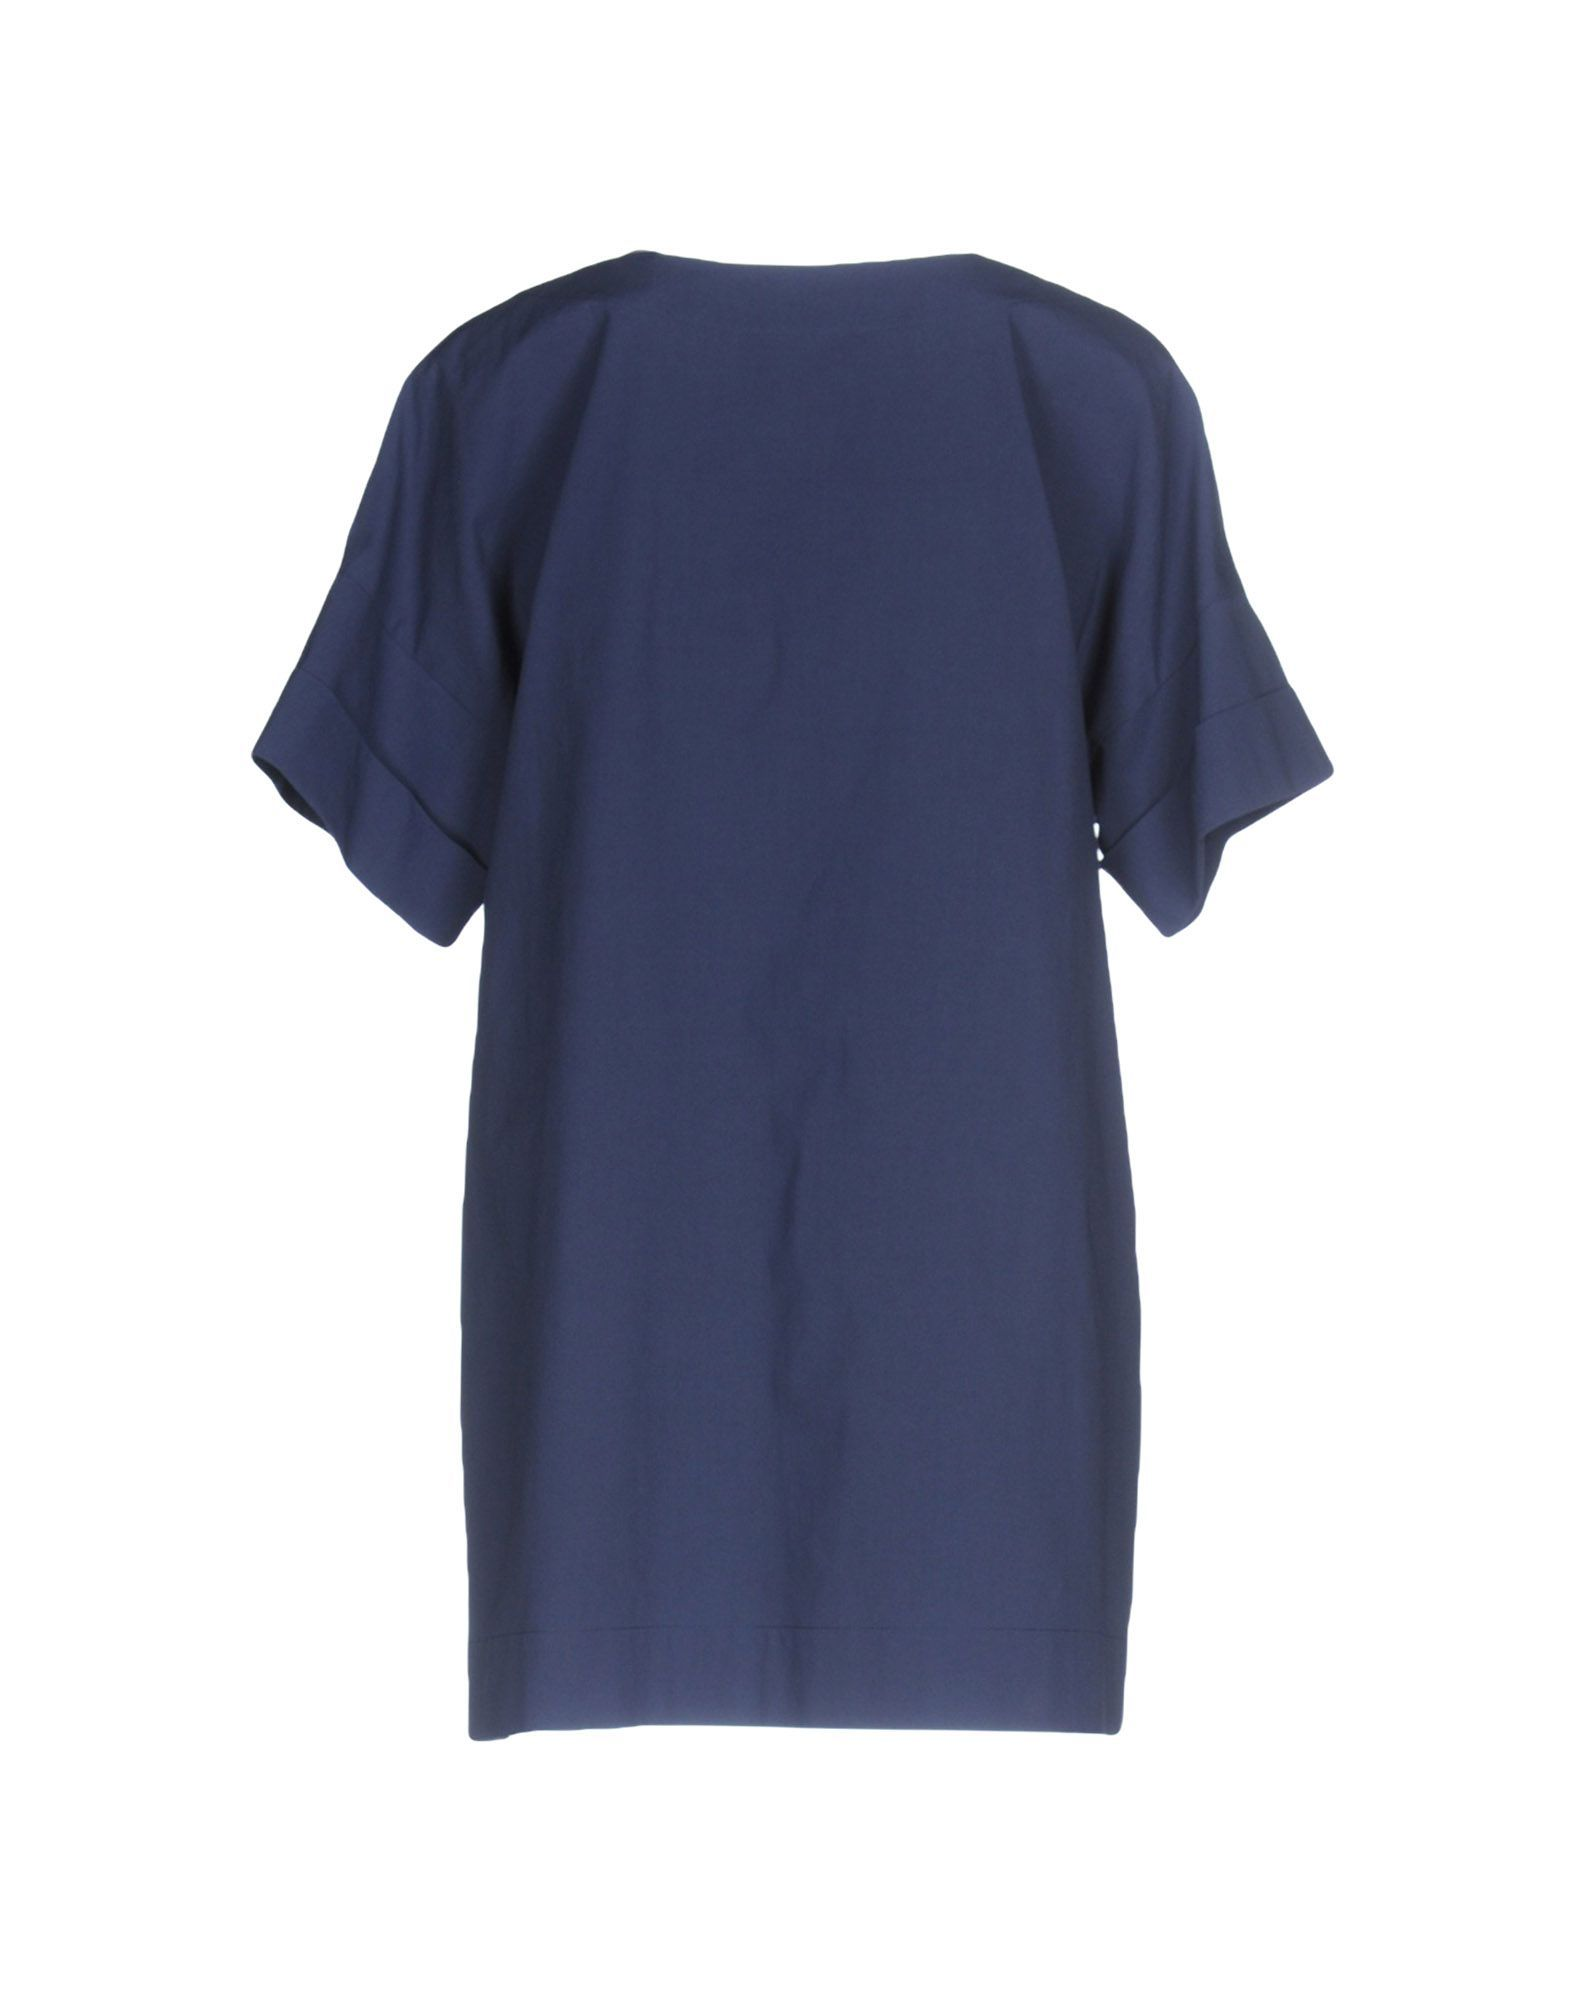 Boutique Moschino Dark blue, White Cotton Bluse